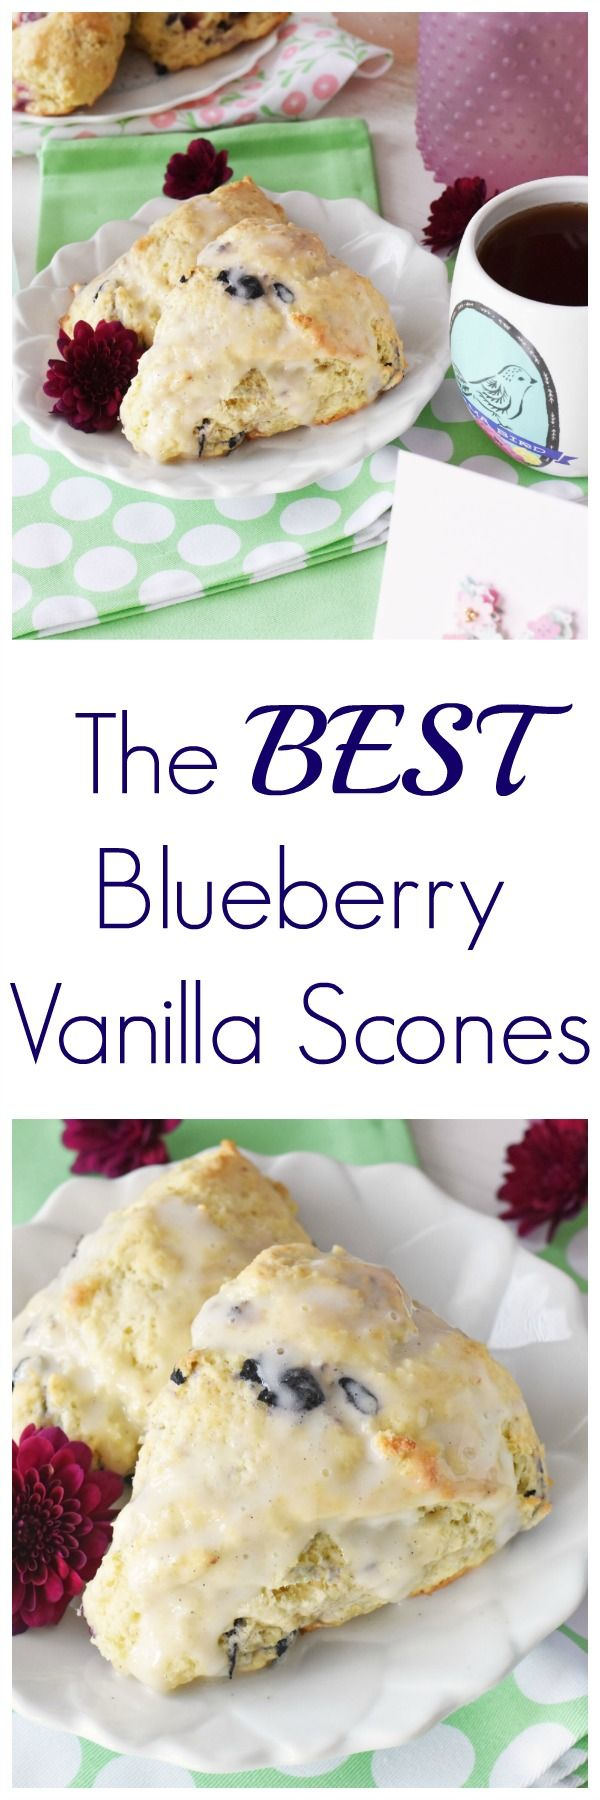 Blueberry Scones Recipe & What Mother's Day Means to Me. Get a delicious blueberry scones recipe and check out some of this year's gorgeous Hallmark cards at Walgreens. #HallmarkAtWalgreens #AD via @Savvy Saving Couple @hallmark @walgreens